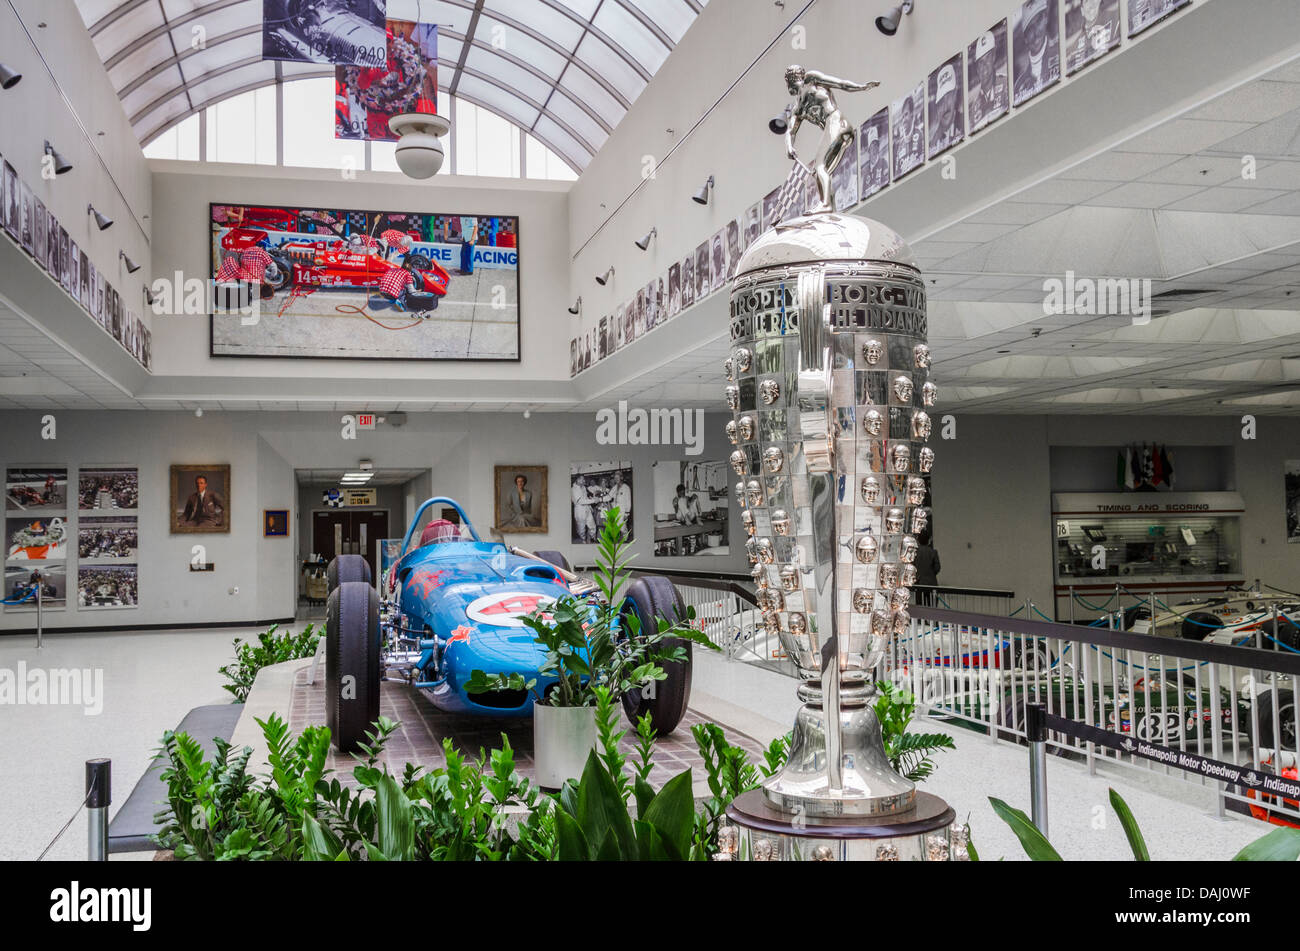 Indianapolis motor speedway hall of fame museum for Indianapolis motor speedway museum